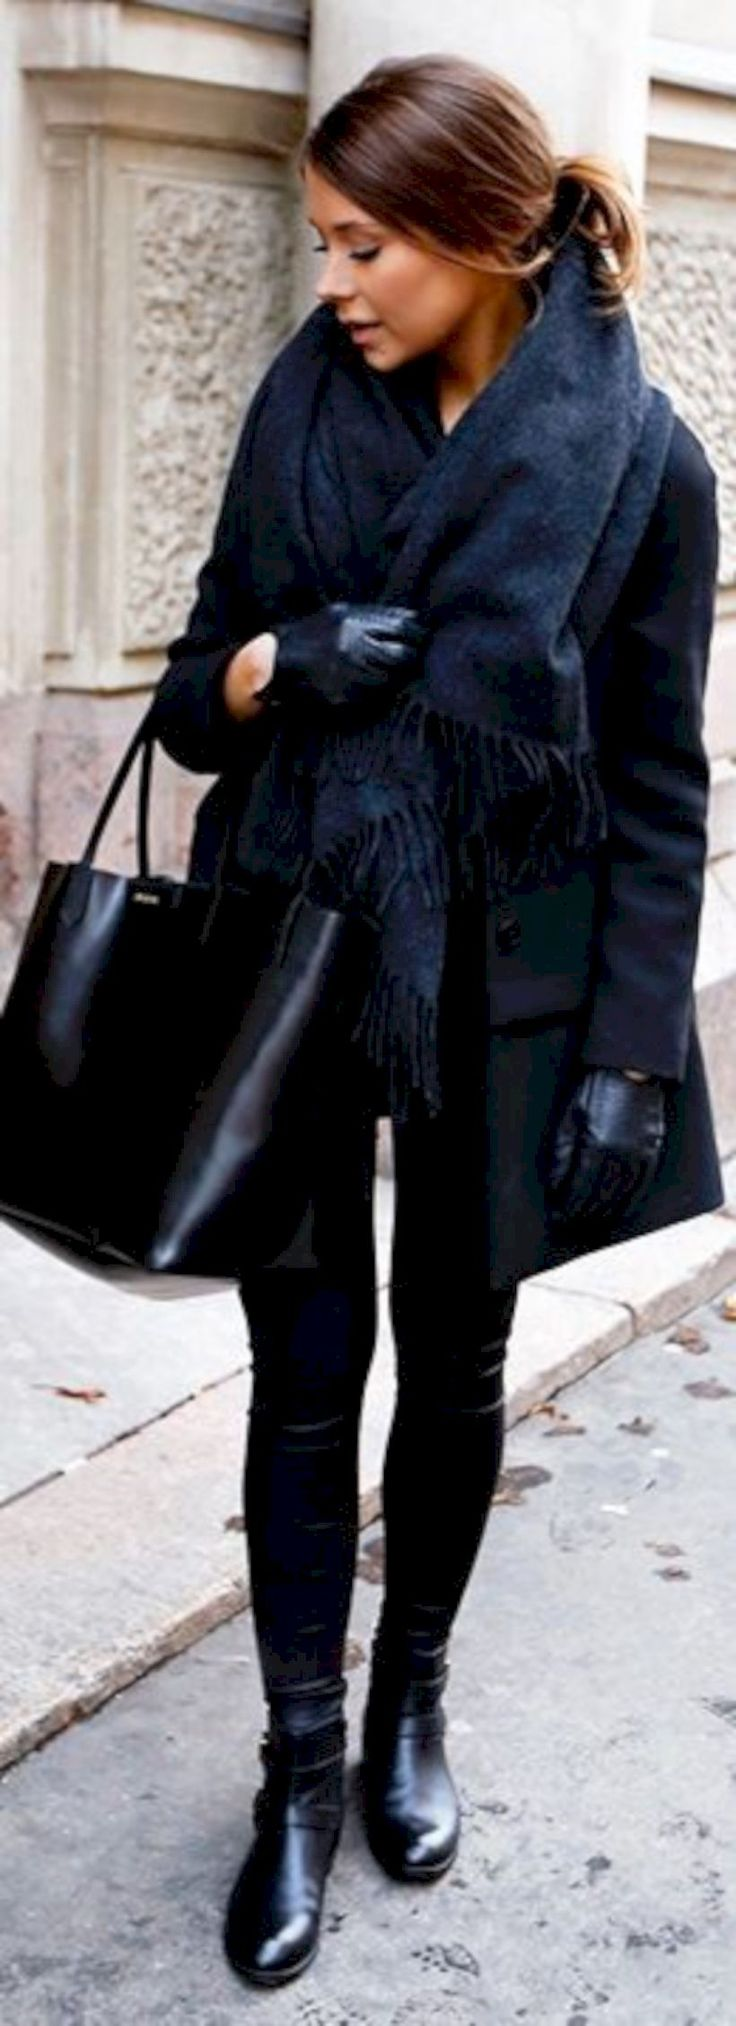 Cool 45 Fabulous Winter Outfits to Copy As Soon As Possible